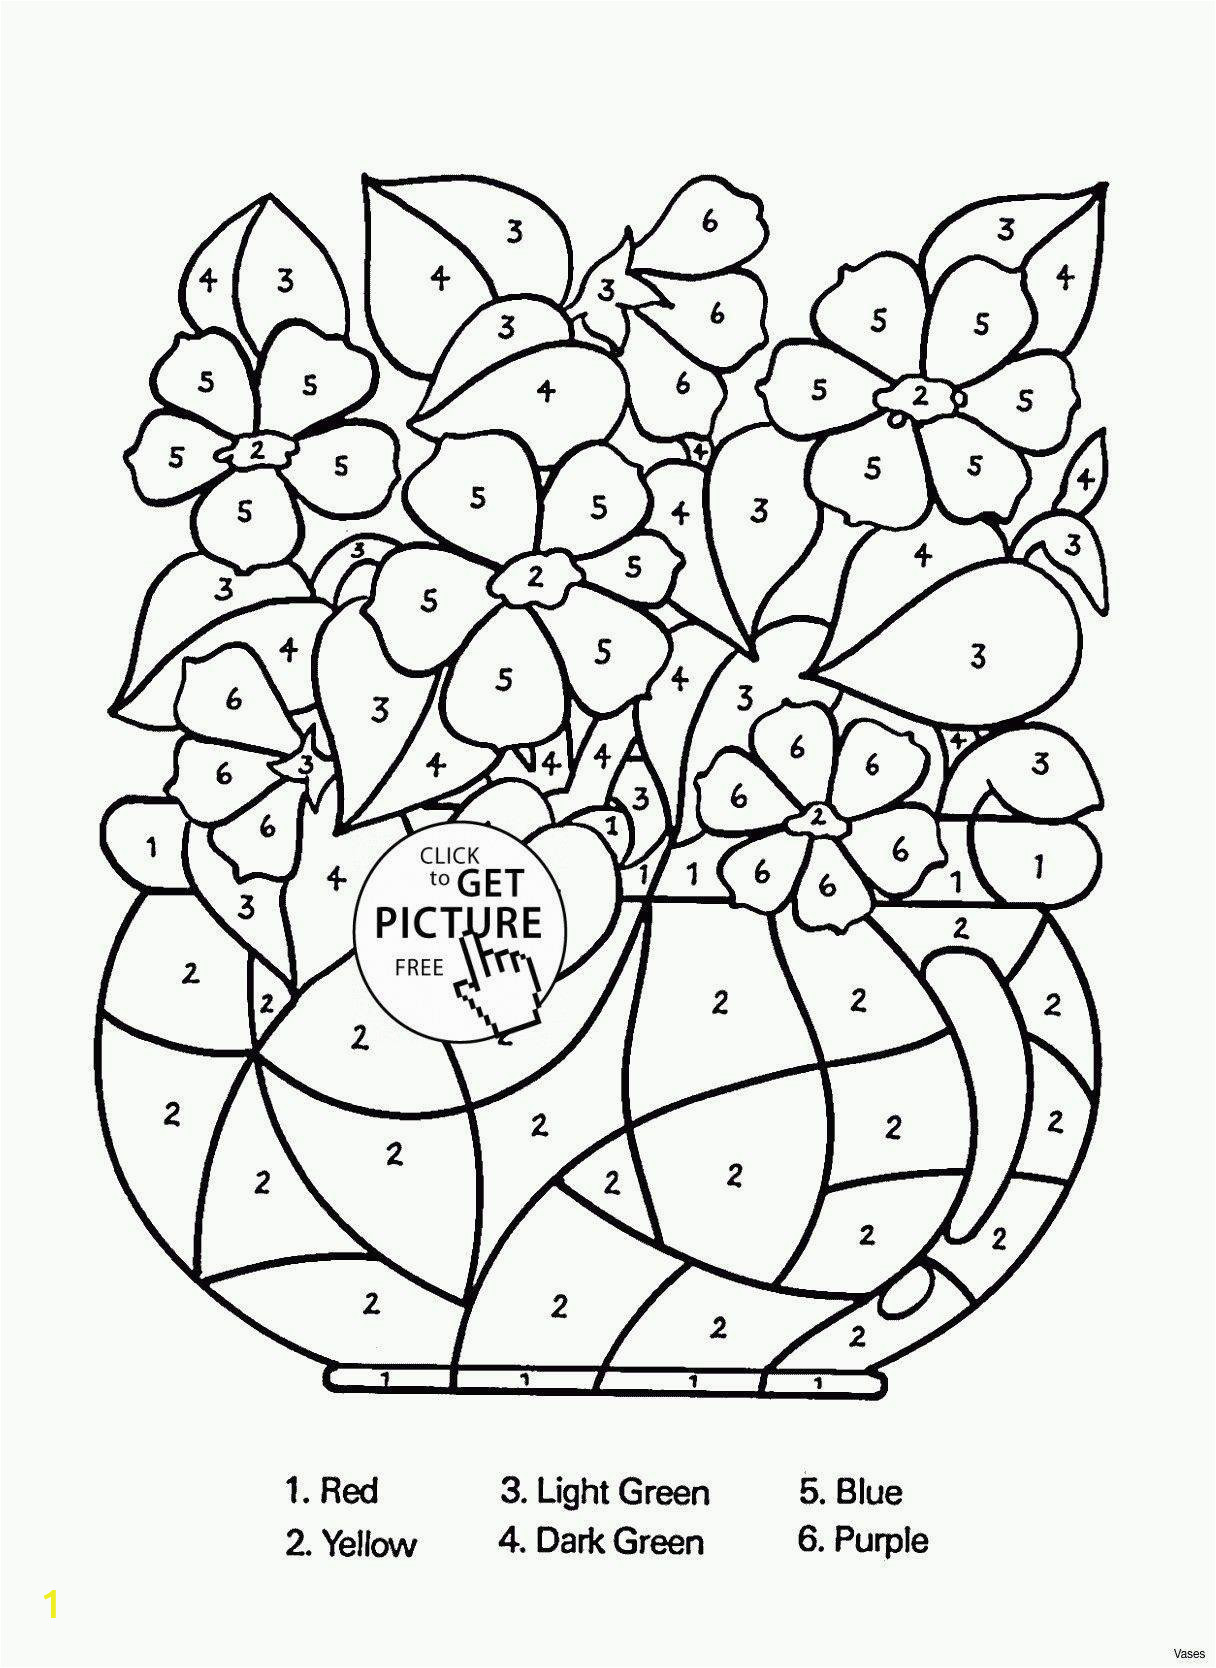 garden coloring pages for kids girl scout daisy flower printable adults and teens ve able